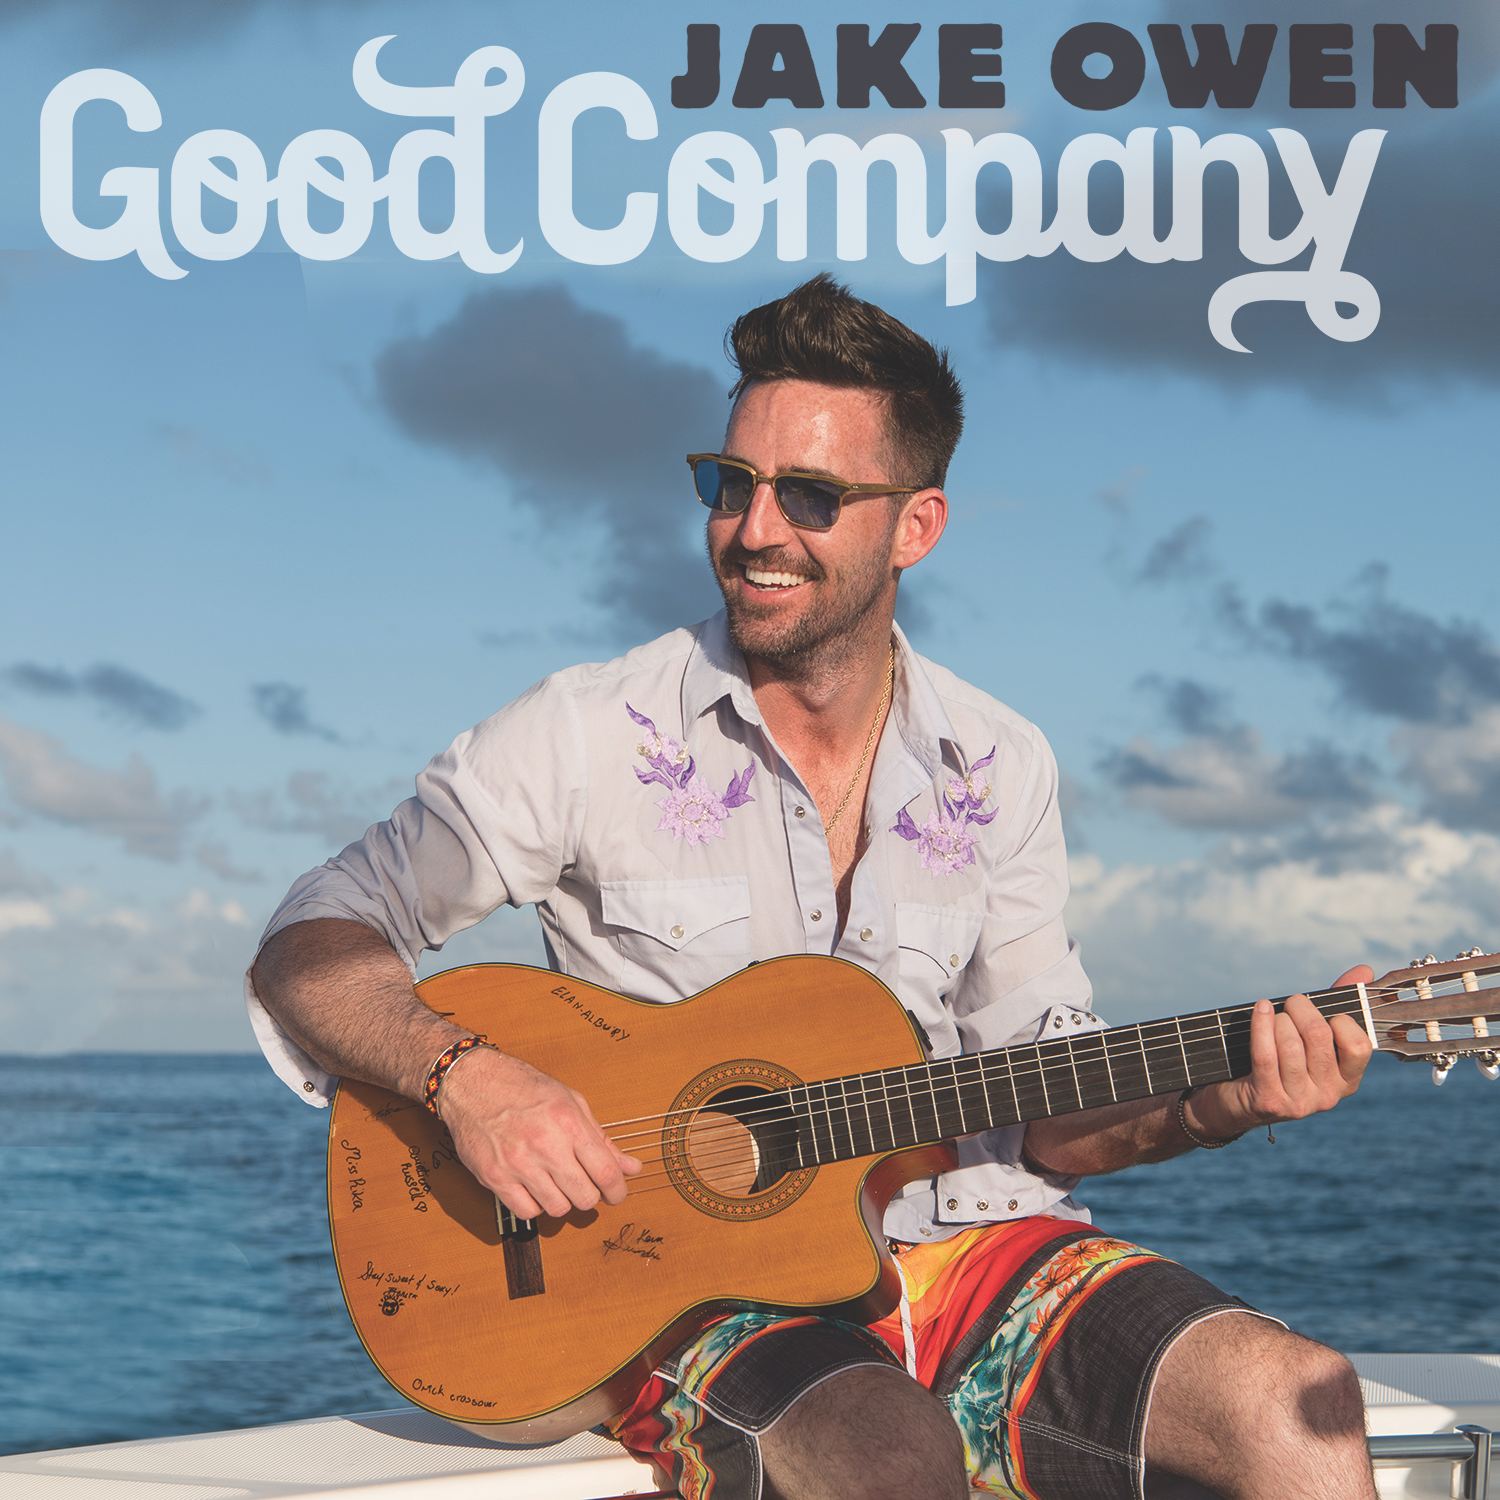 JAKE OWEN RELEASES GOOD COMPANY MUSIC VIDEO